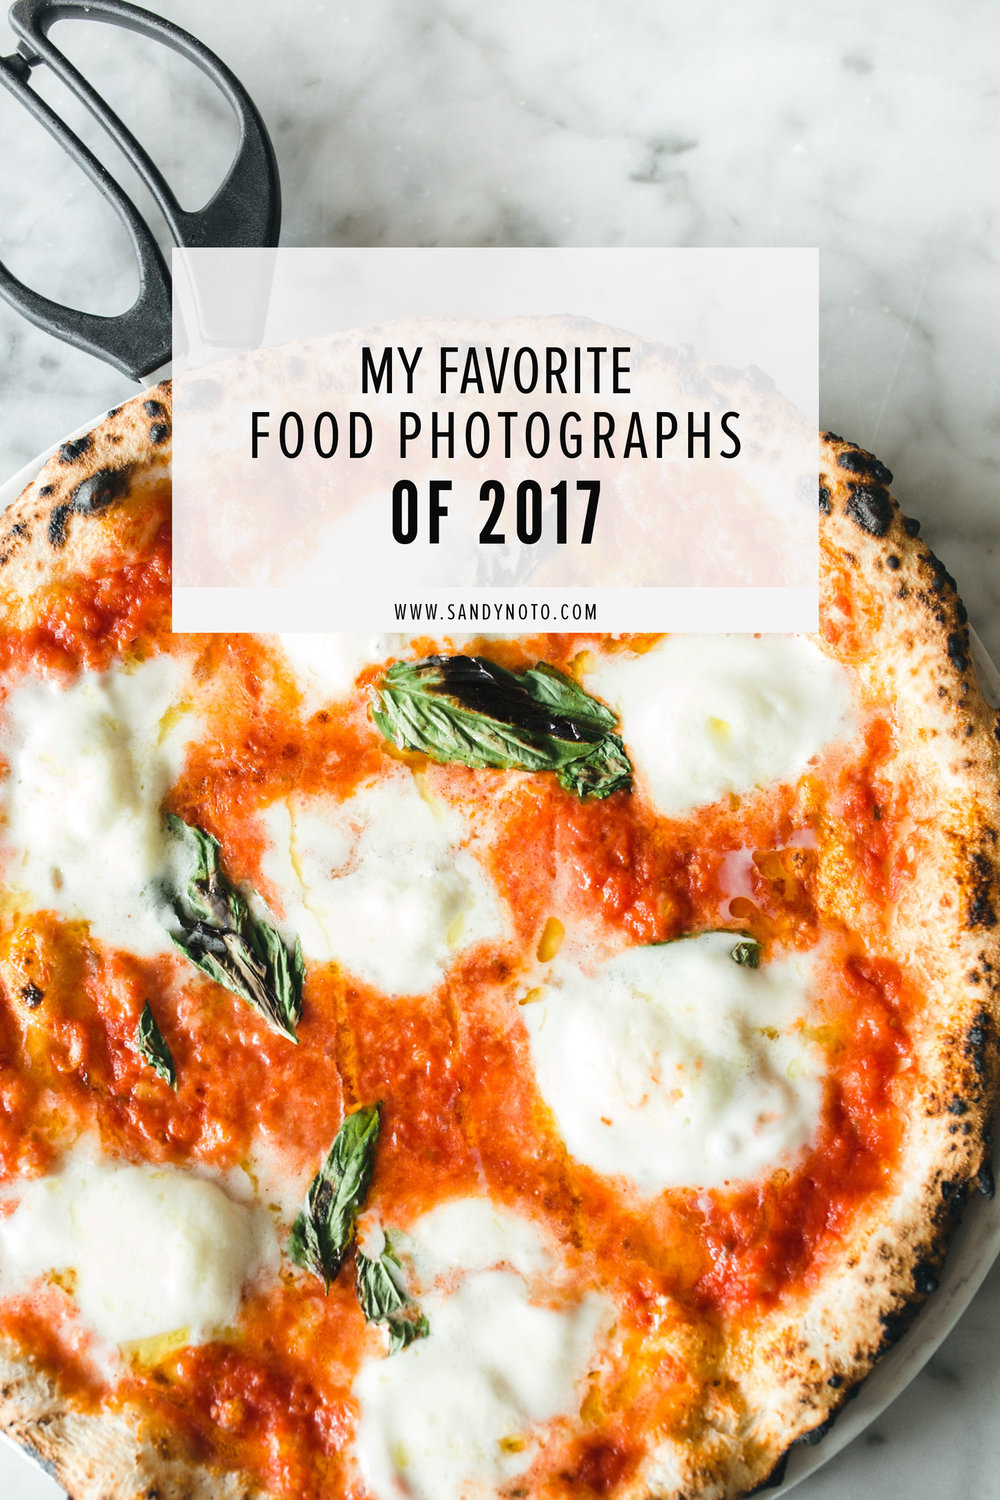 Favorite Food Photographs of 2017